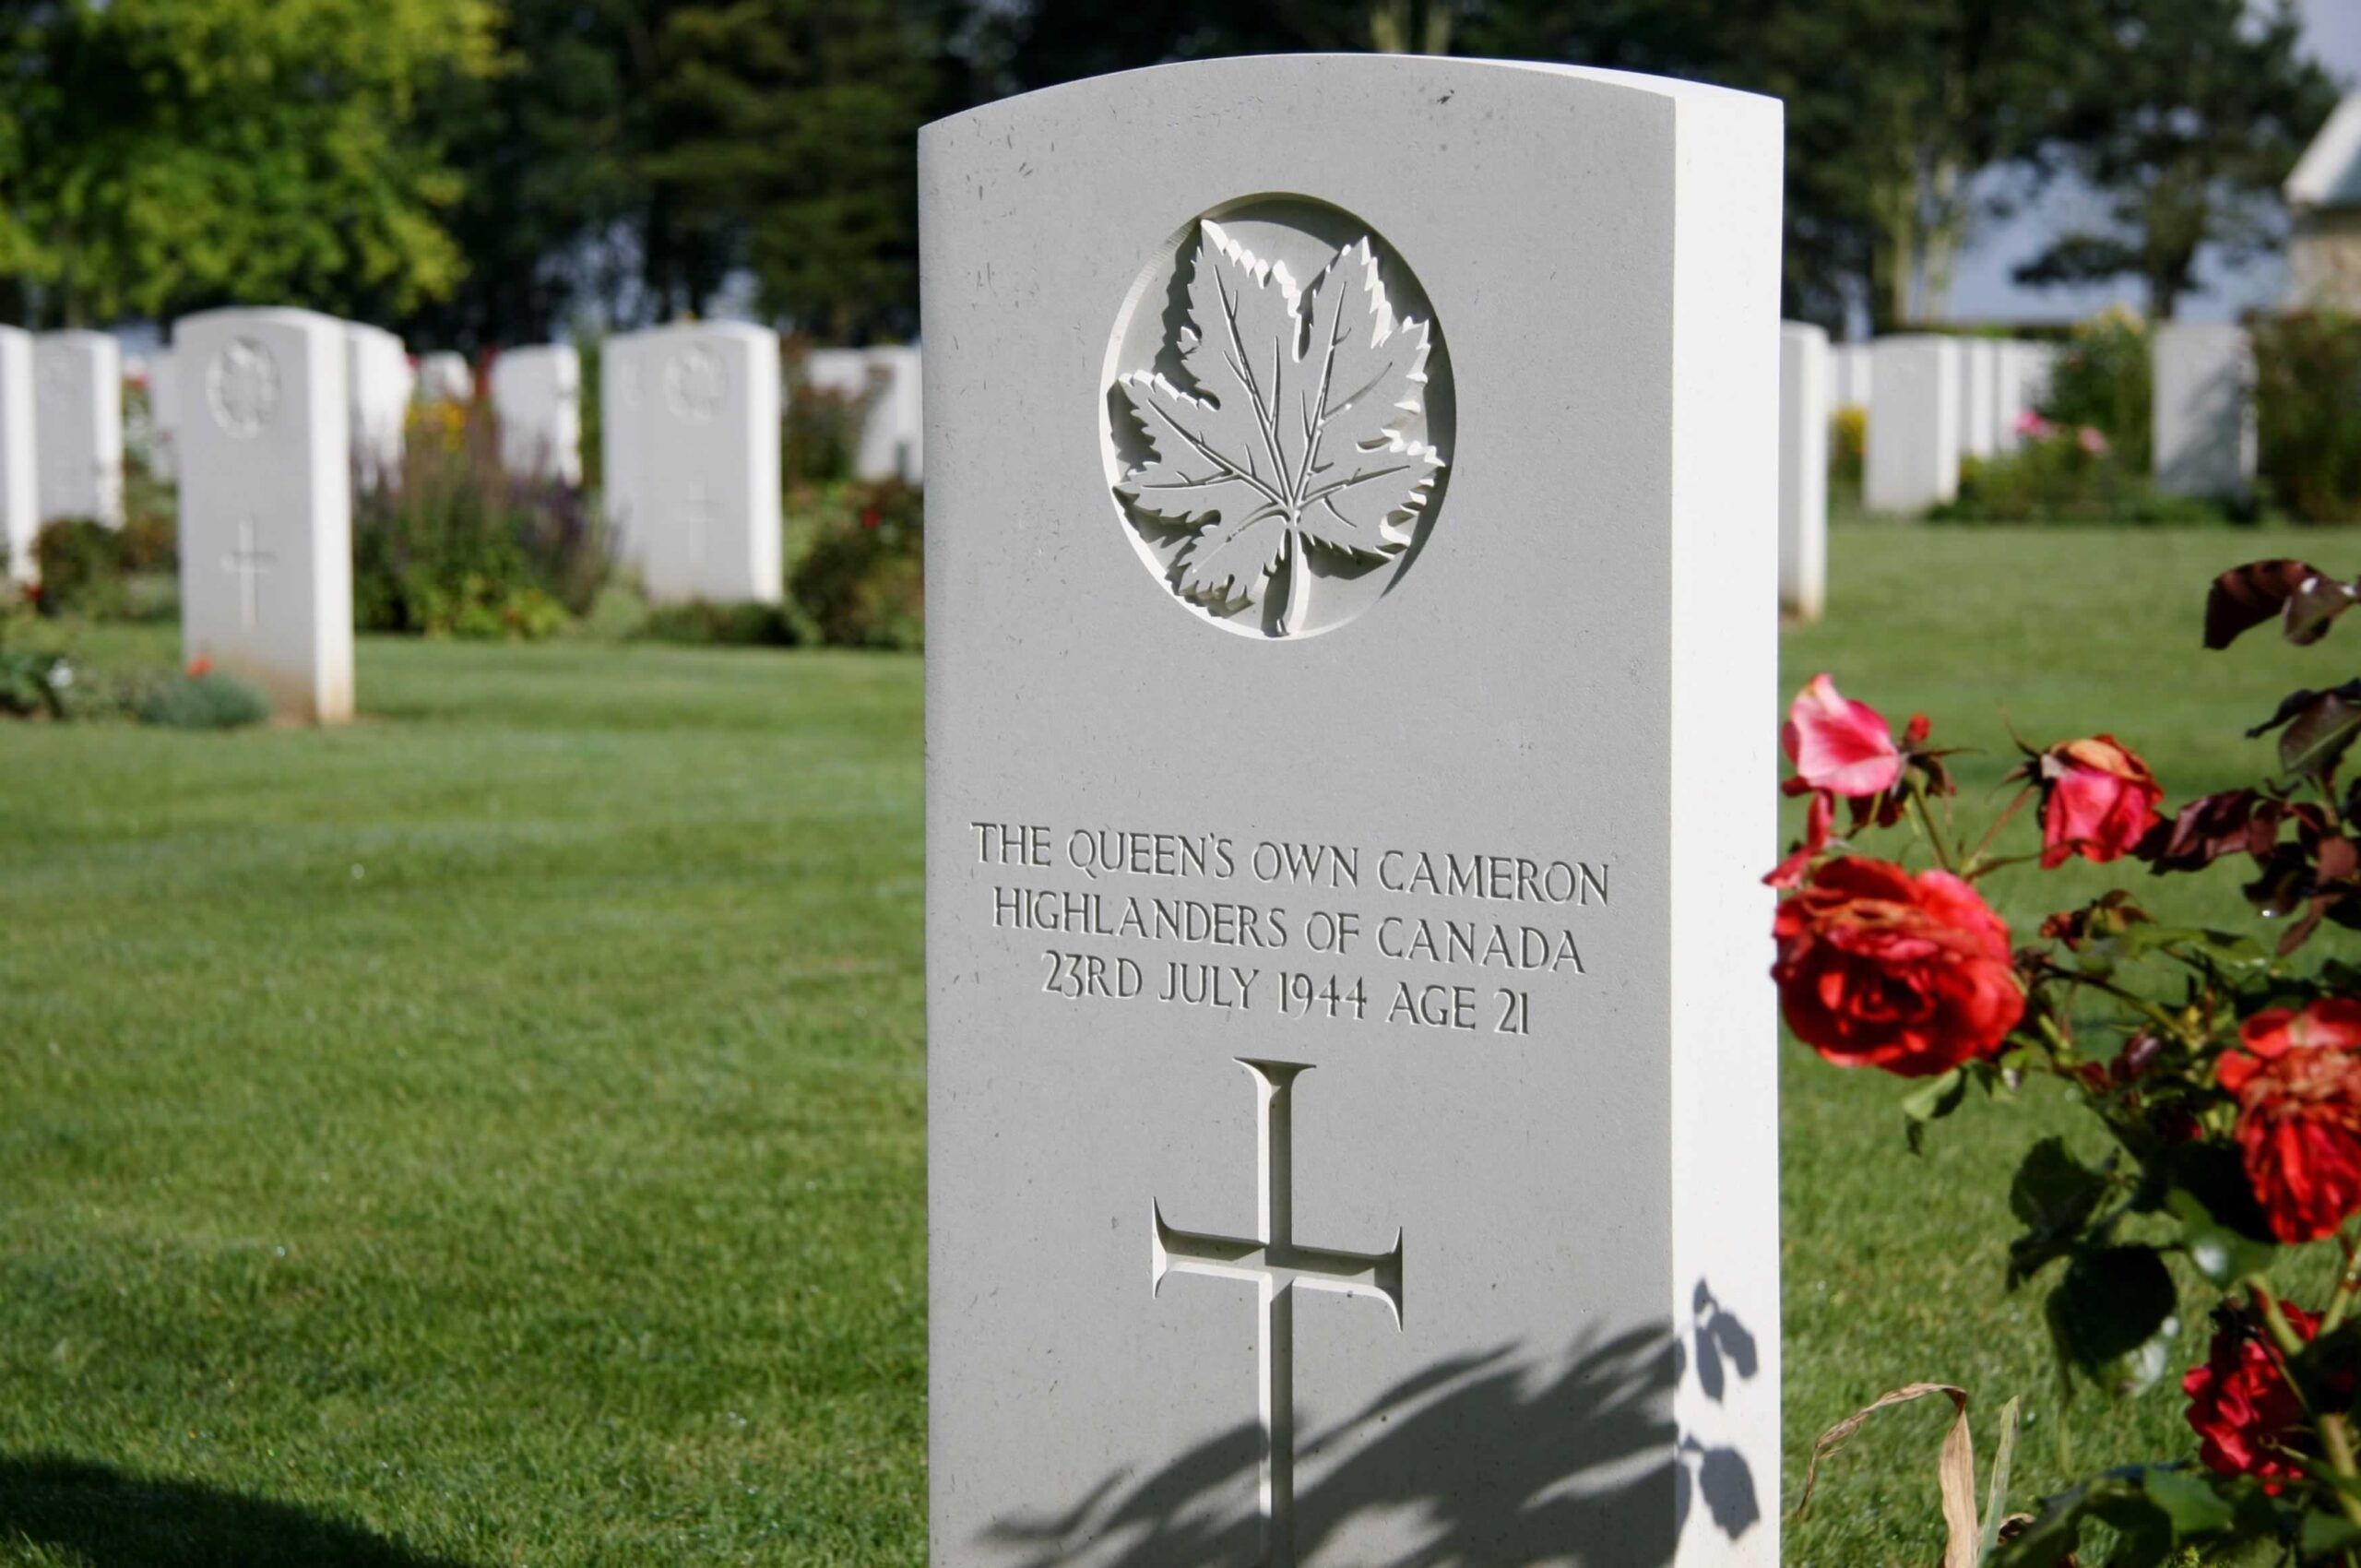 Headstone of 21 year old fallen soldier. Shot taken at the memorial Canadian cemetery in Normandy France, Bény-sur-Mer Canadian War Cemetery.